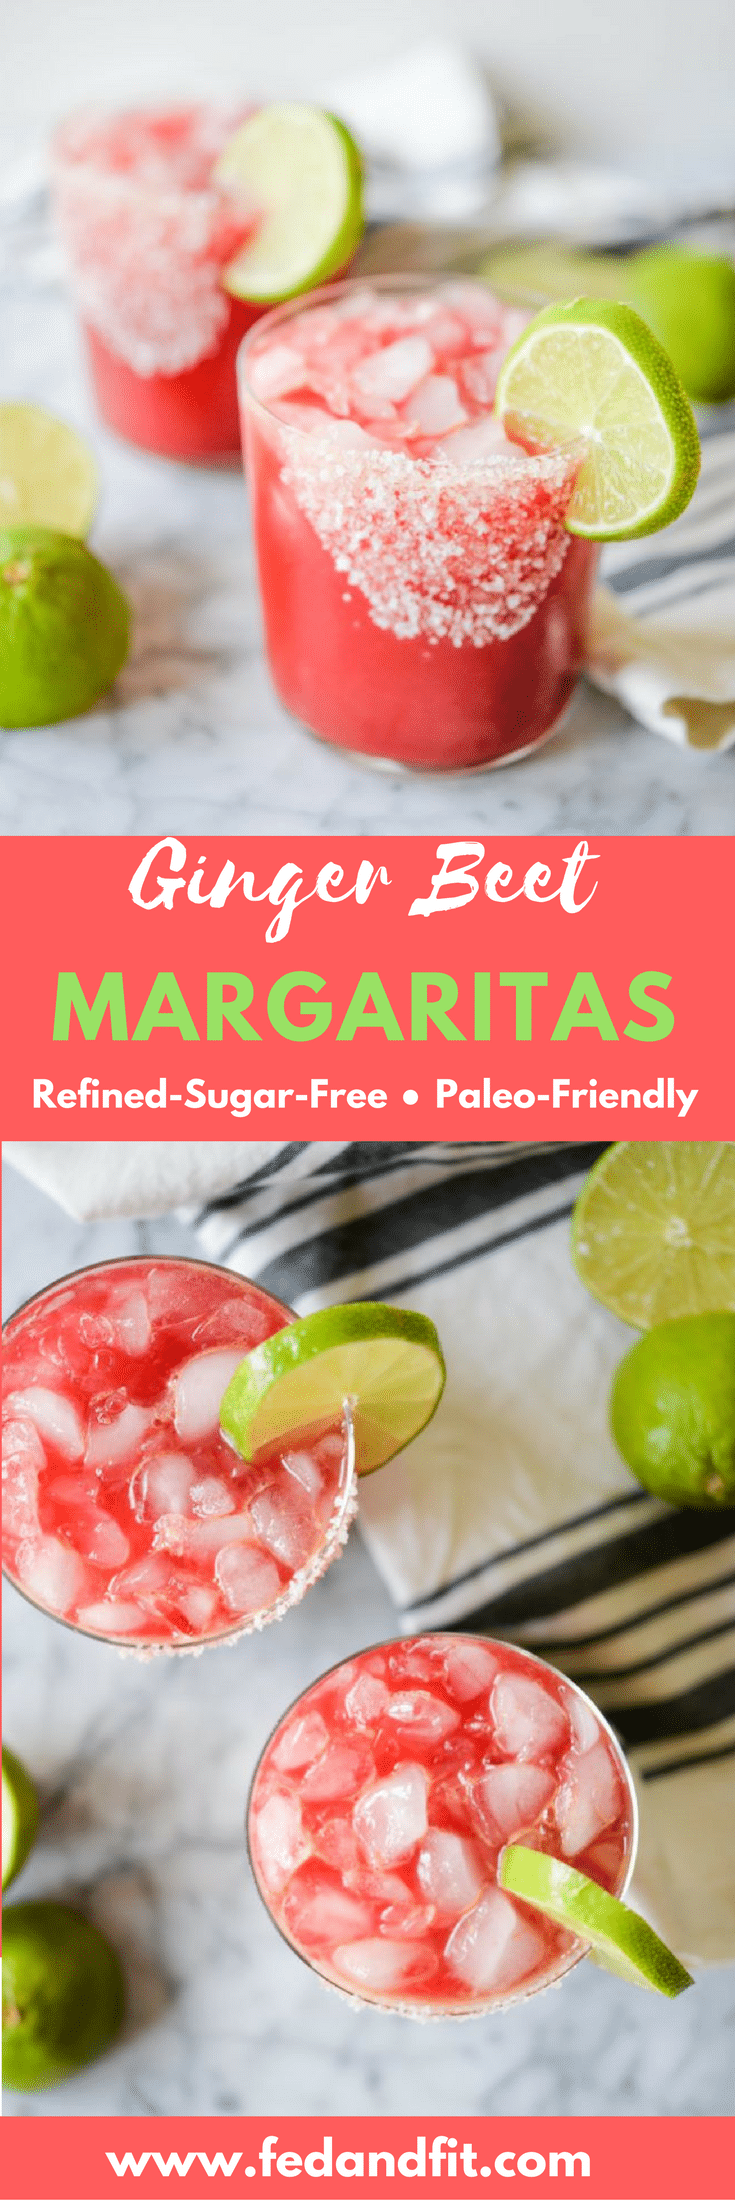 These skinny Ginger Beet Margaritas are a great twist on the classic recipe and easy enough for a crowd! Even better, they are Paleo-friendly and refined-sugar-free for the perfect healthier margarita.